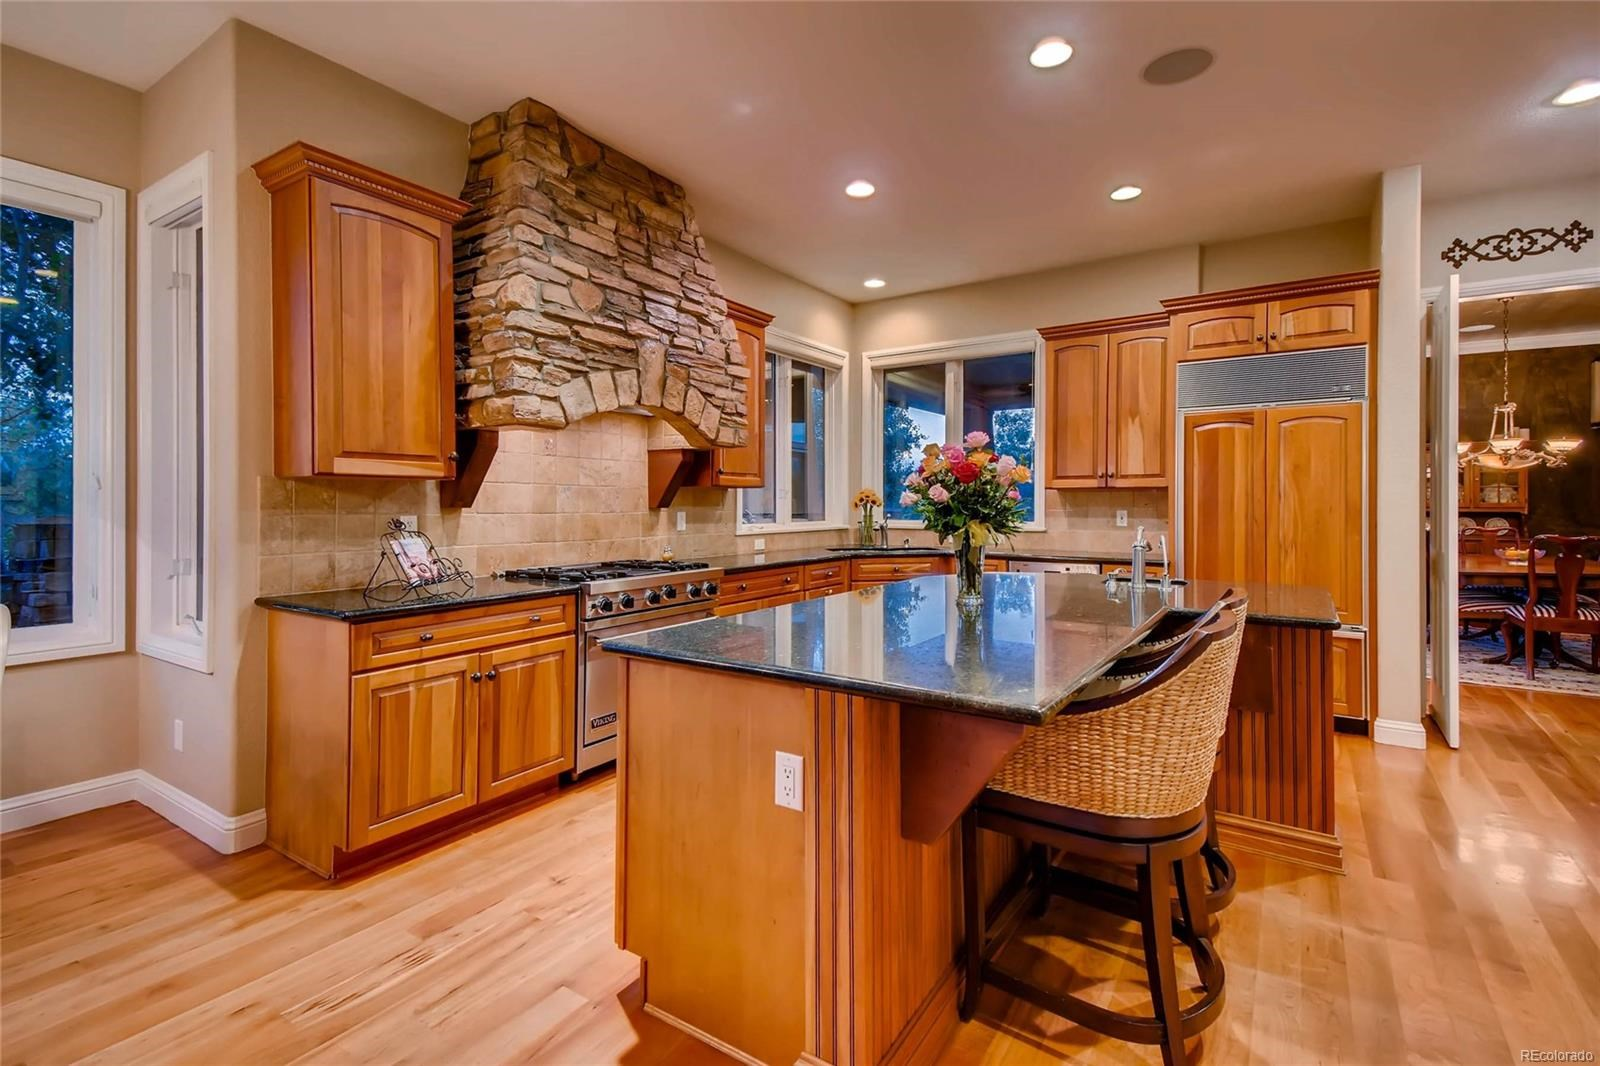 MLS# 2997691 - 8 - 2436 Bitterroot Circle, Lafayette, CO 80026